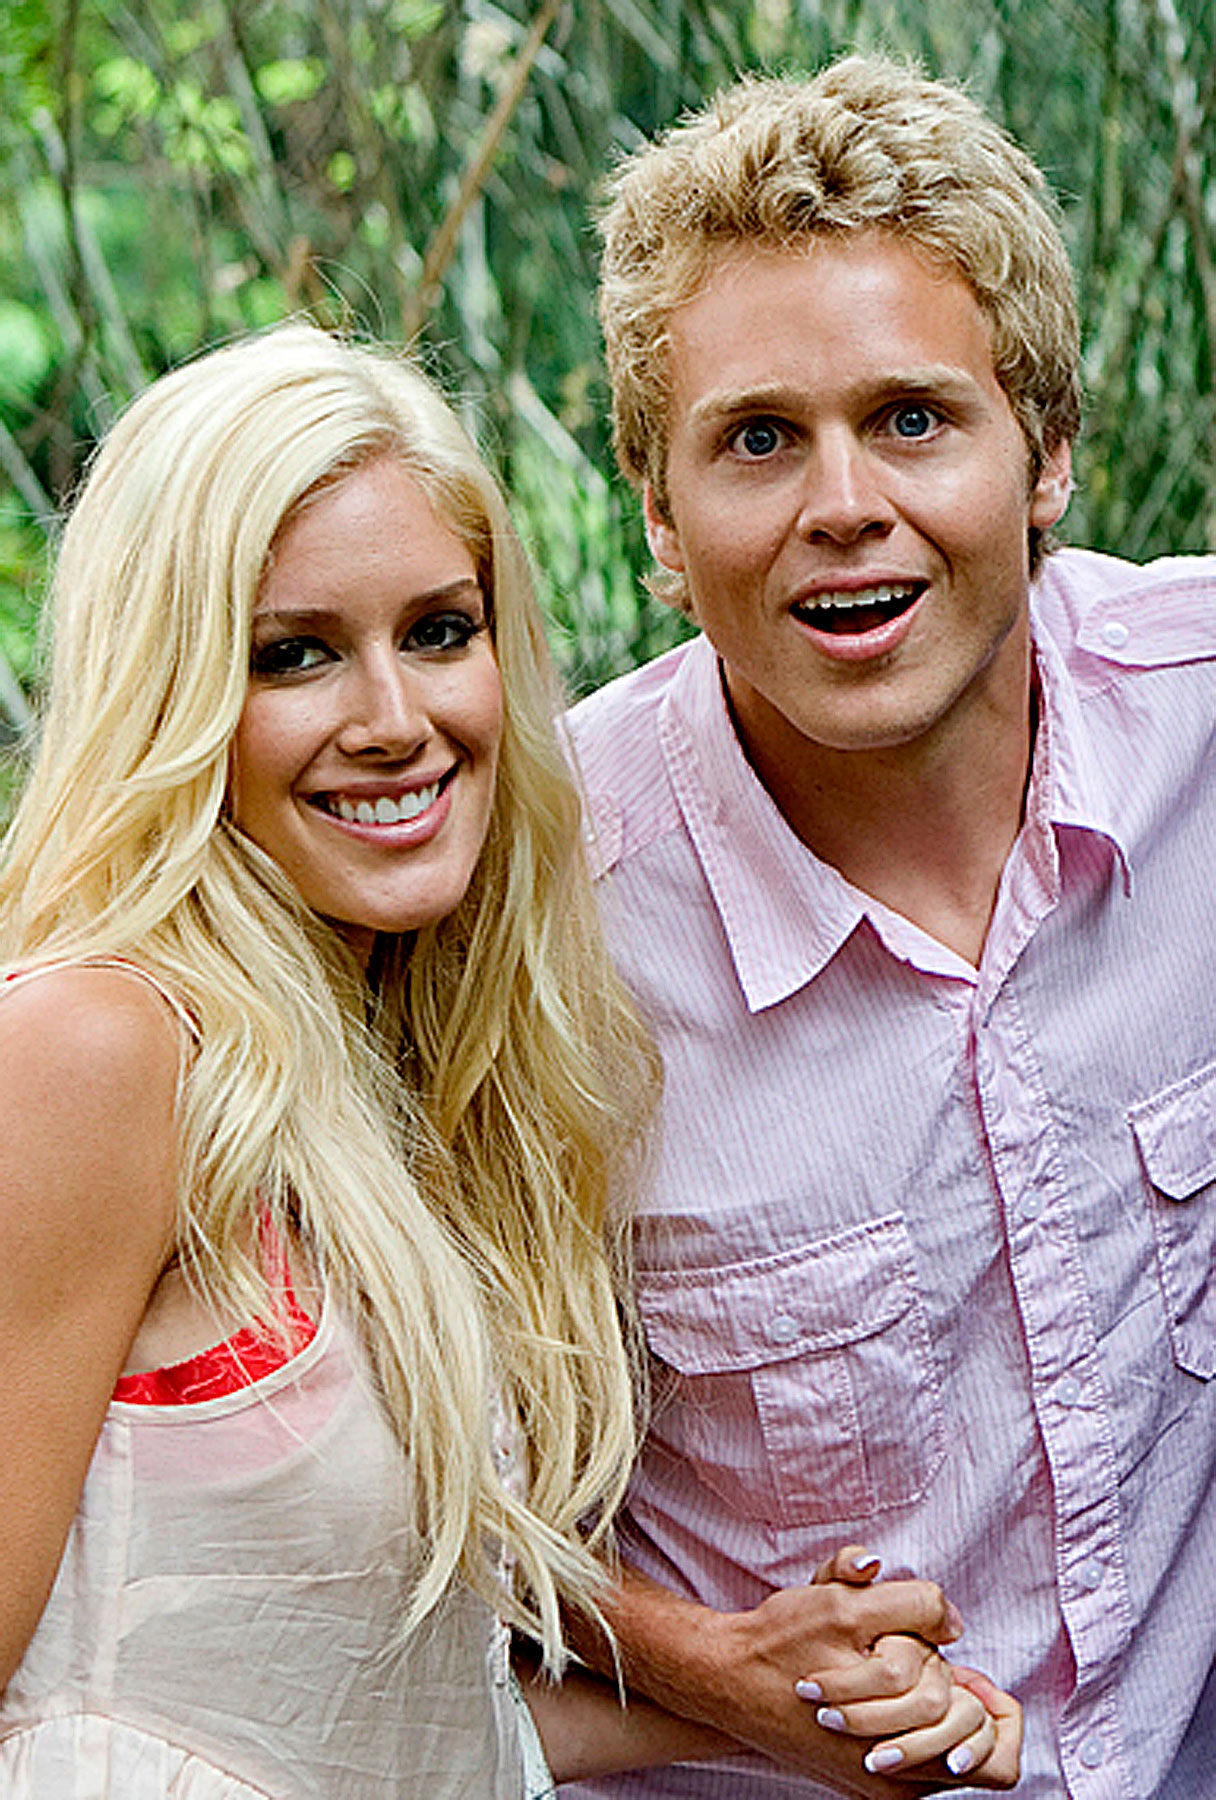 Have The Pratts Quit 'I'm A Celebrity'?